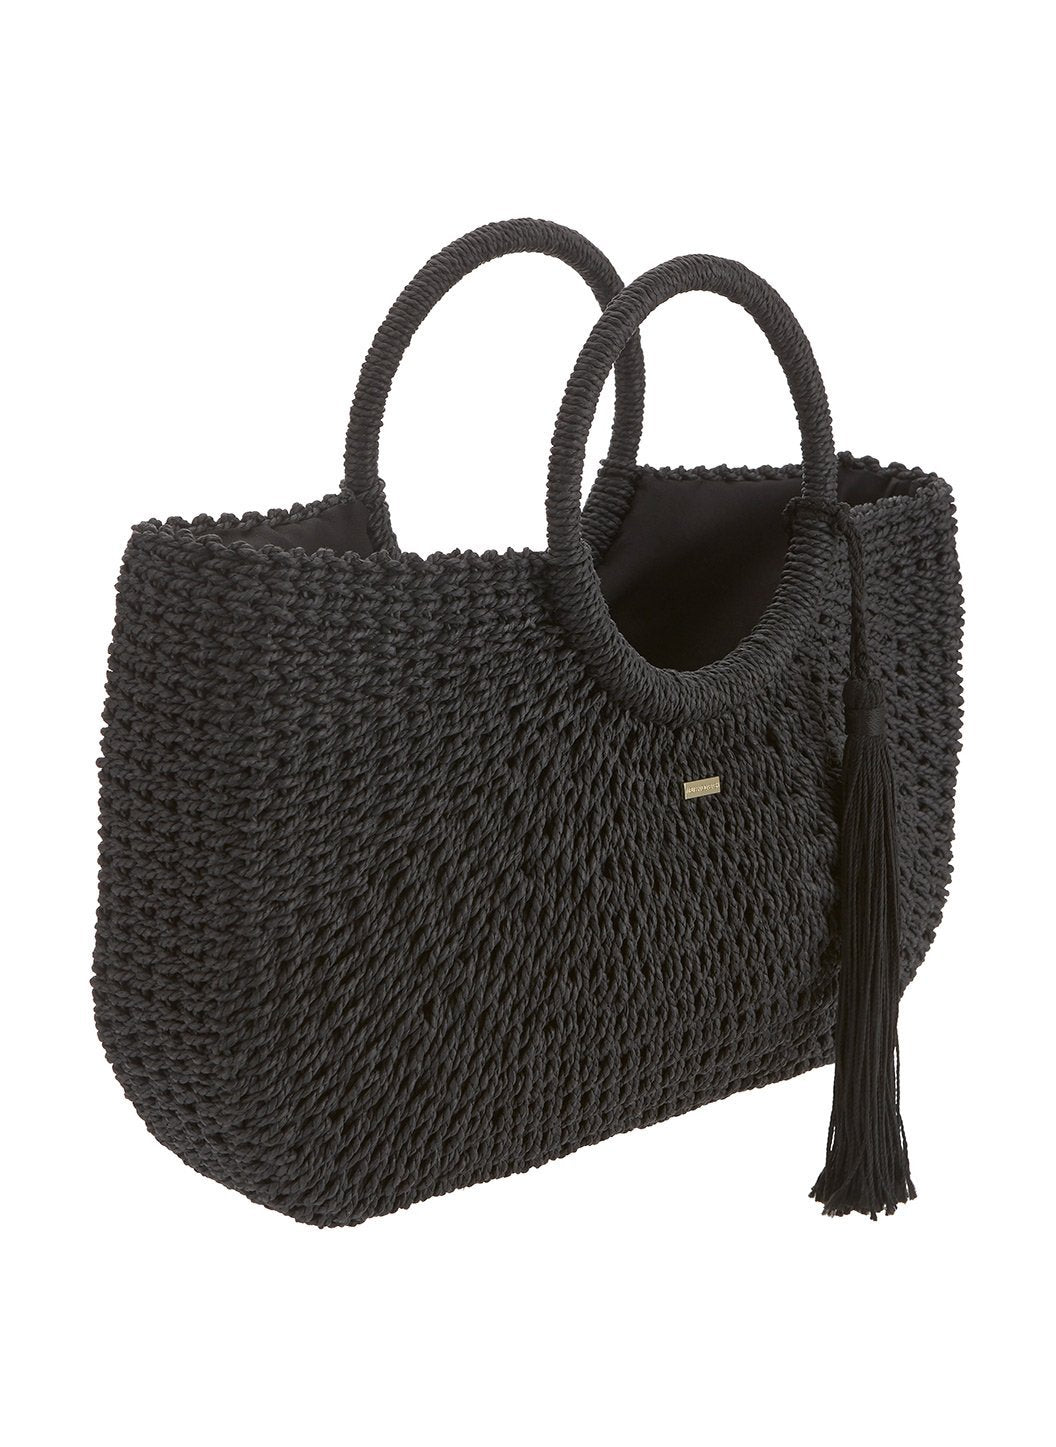 sorrento woven basket bag black 2019 2